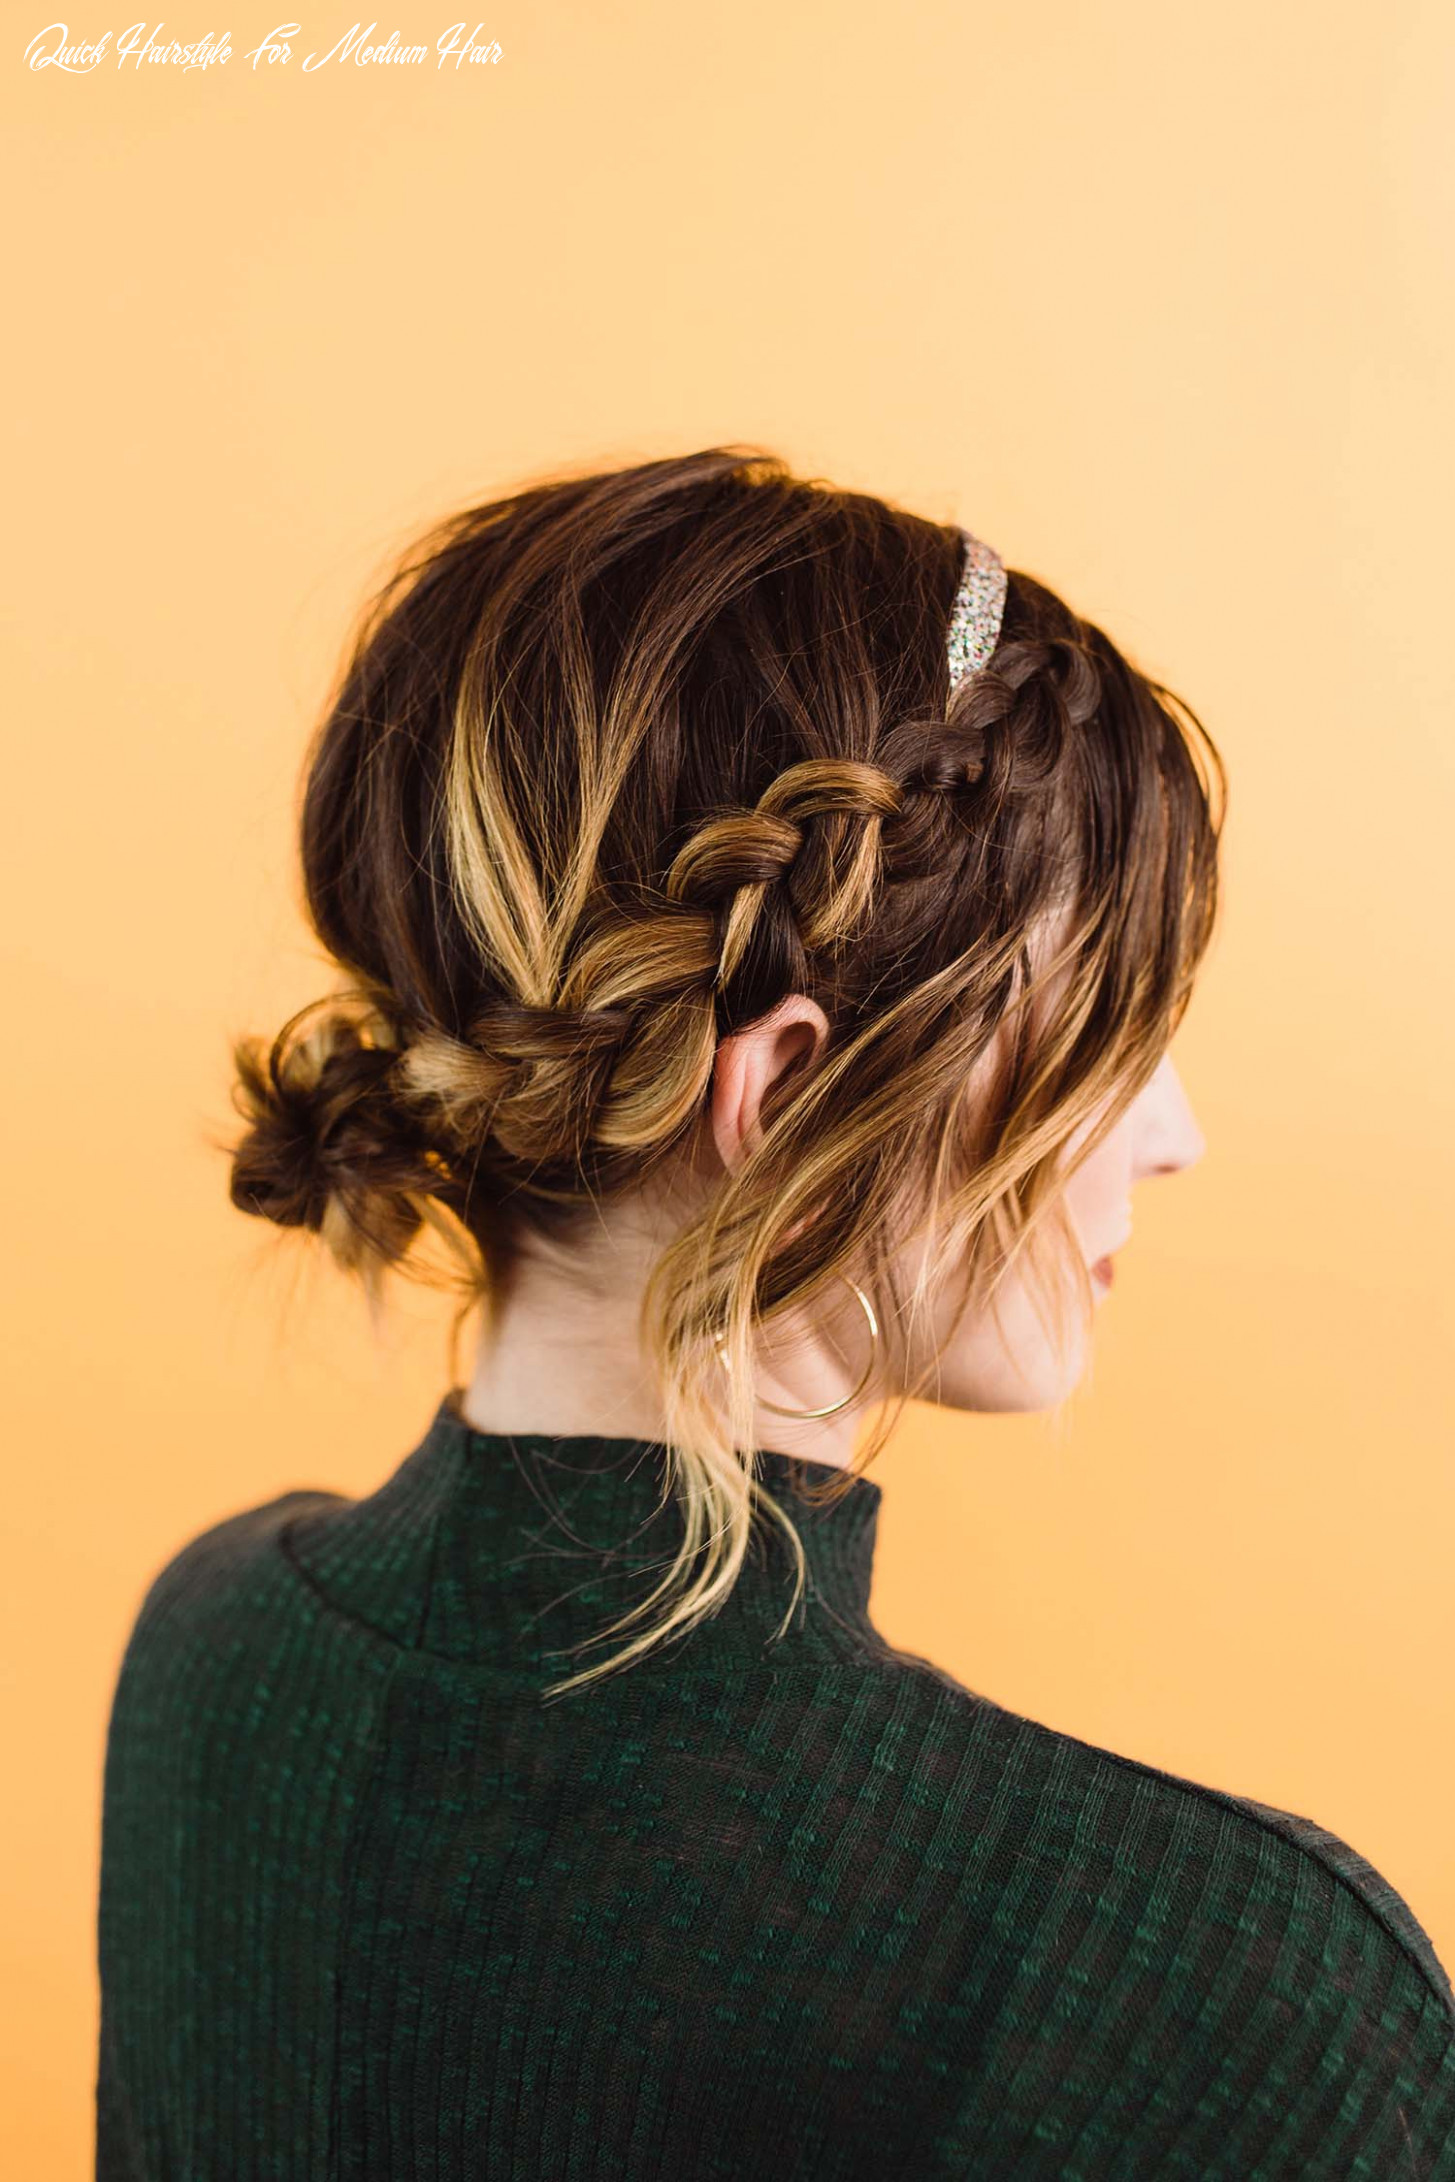 Easy Updo Styles for Medium or Long Hair - A Beautiful Mess